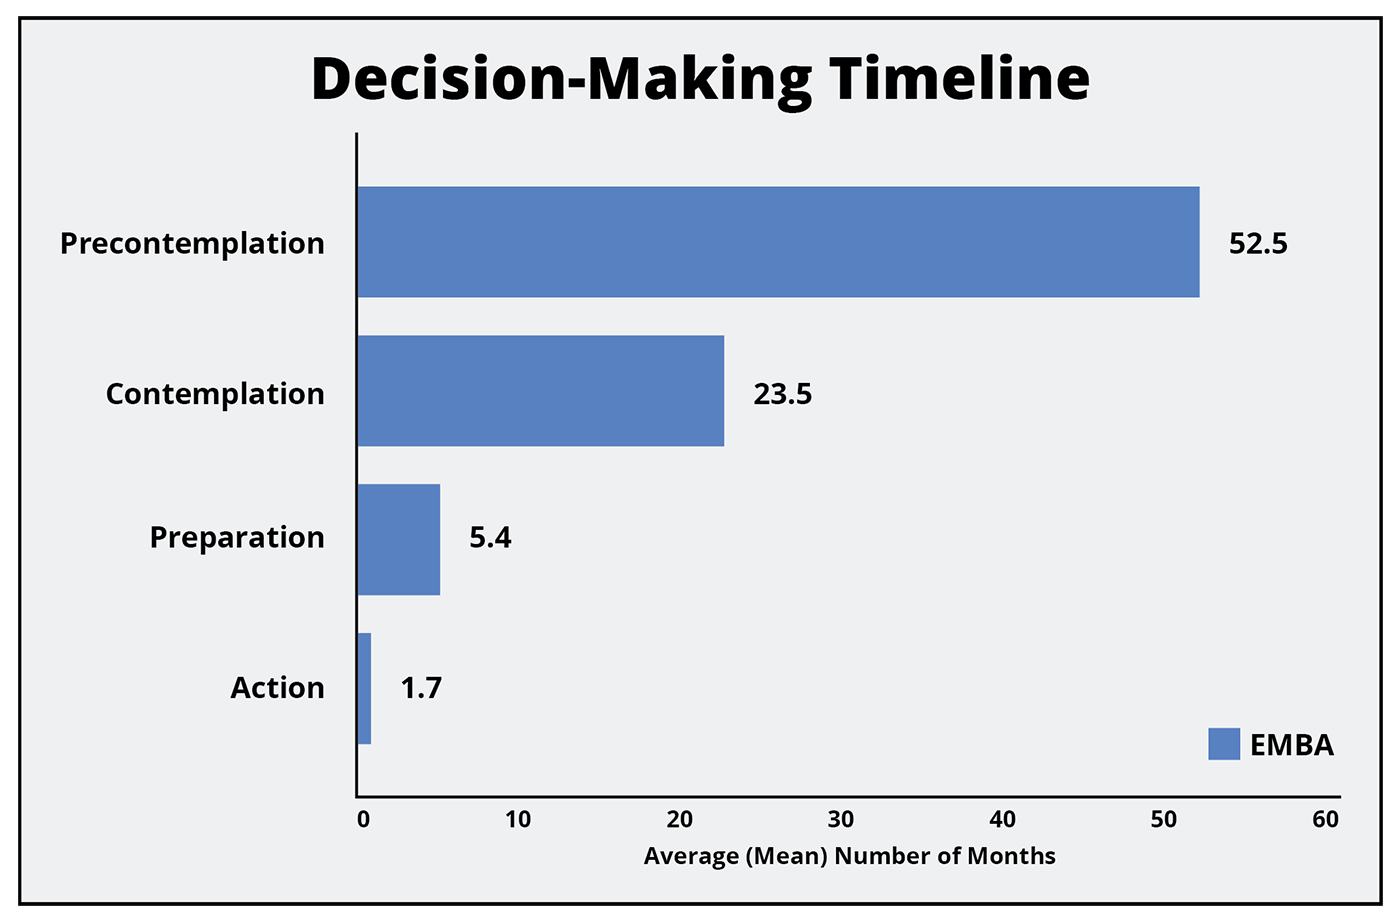 EMBA Decision-Making Timeline